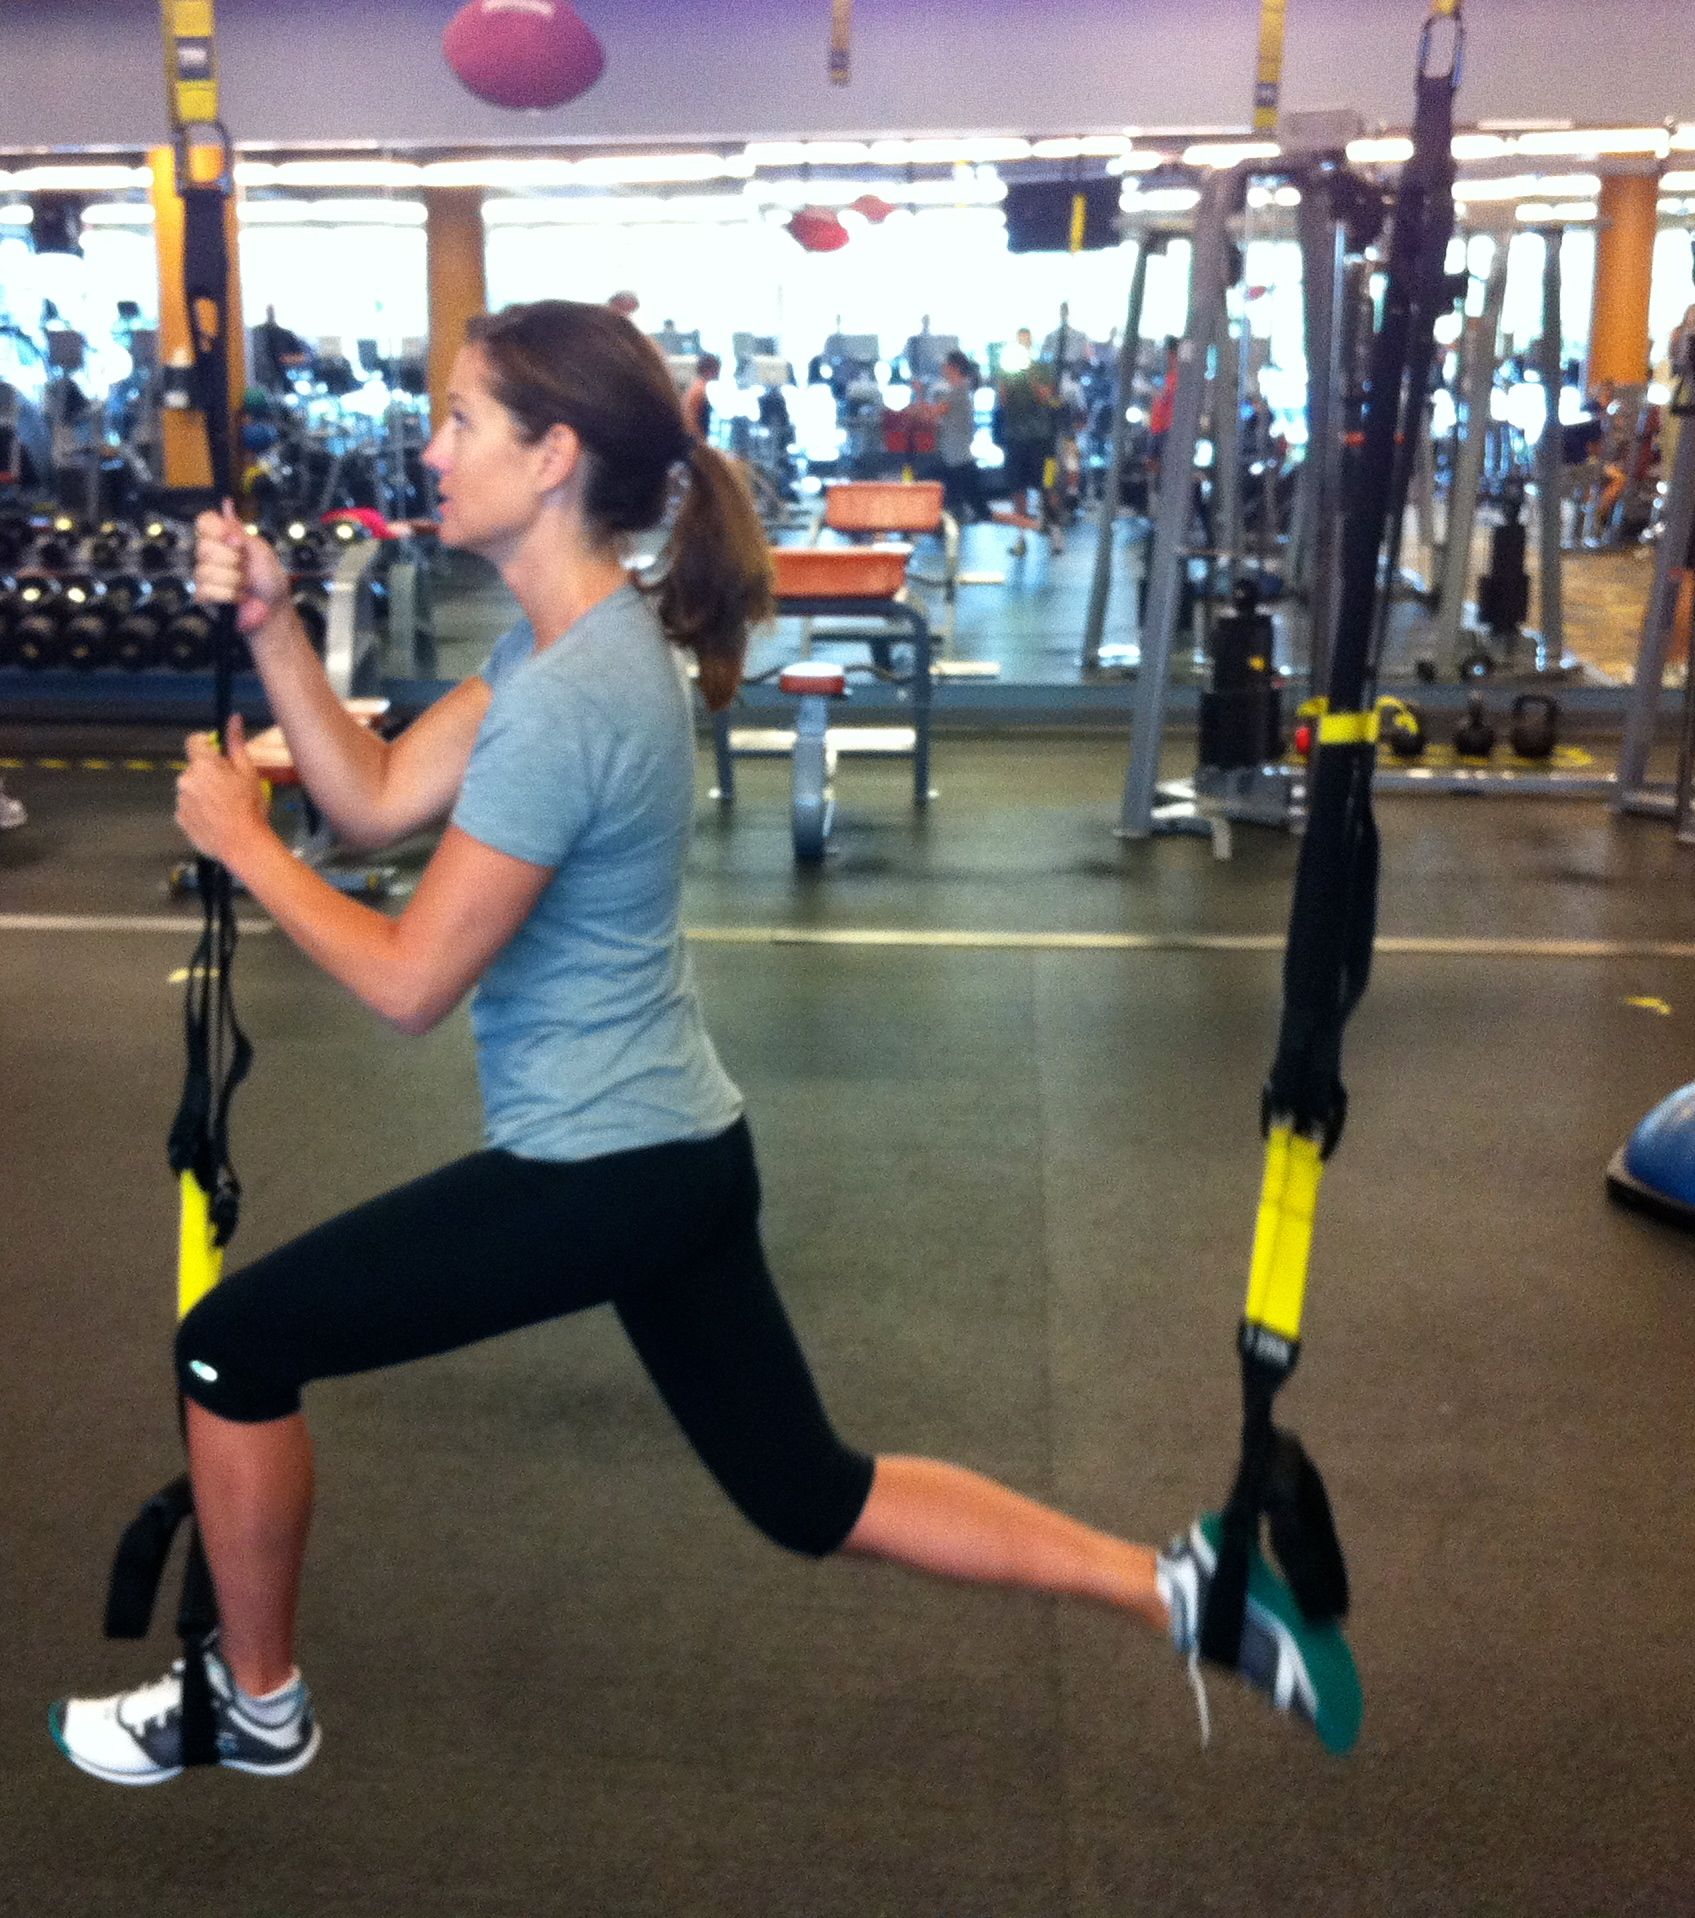 Trx Black Friday Sale 30 Off Plus Free Shipping The